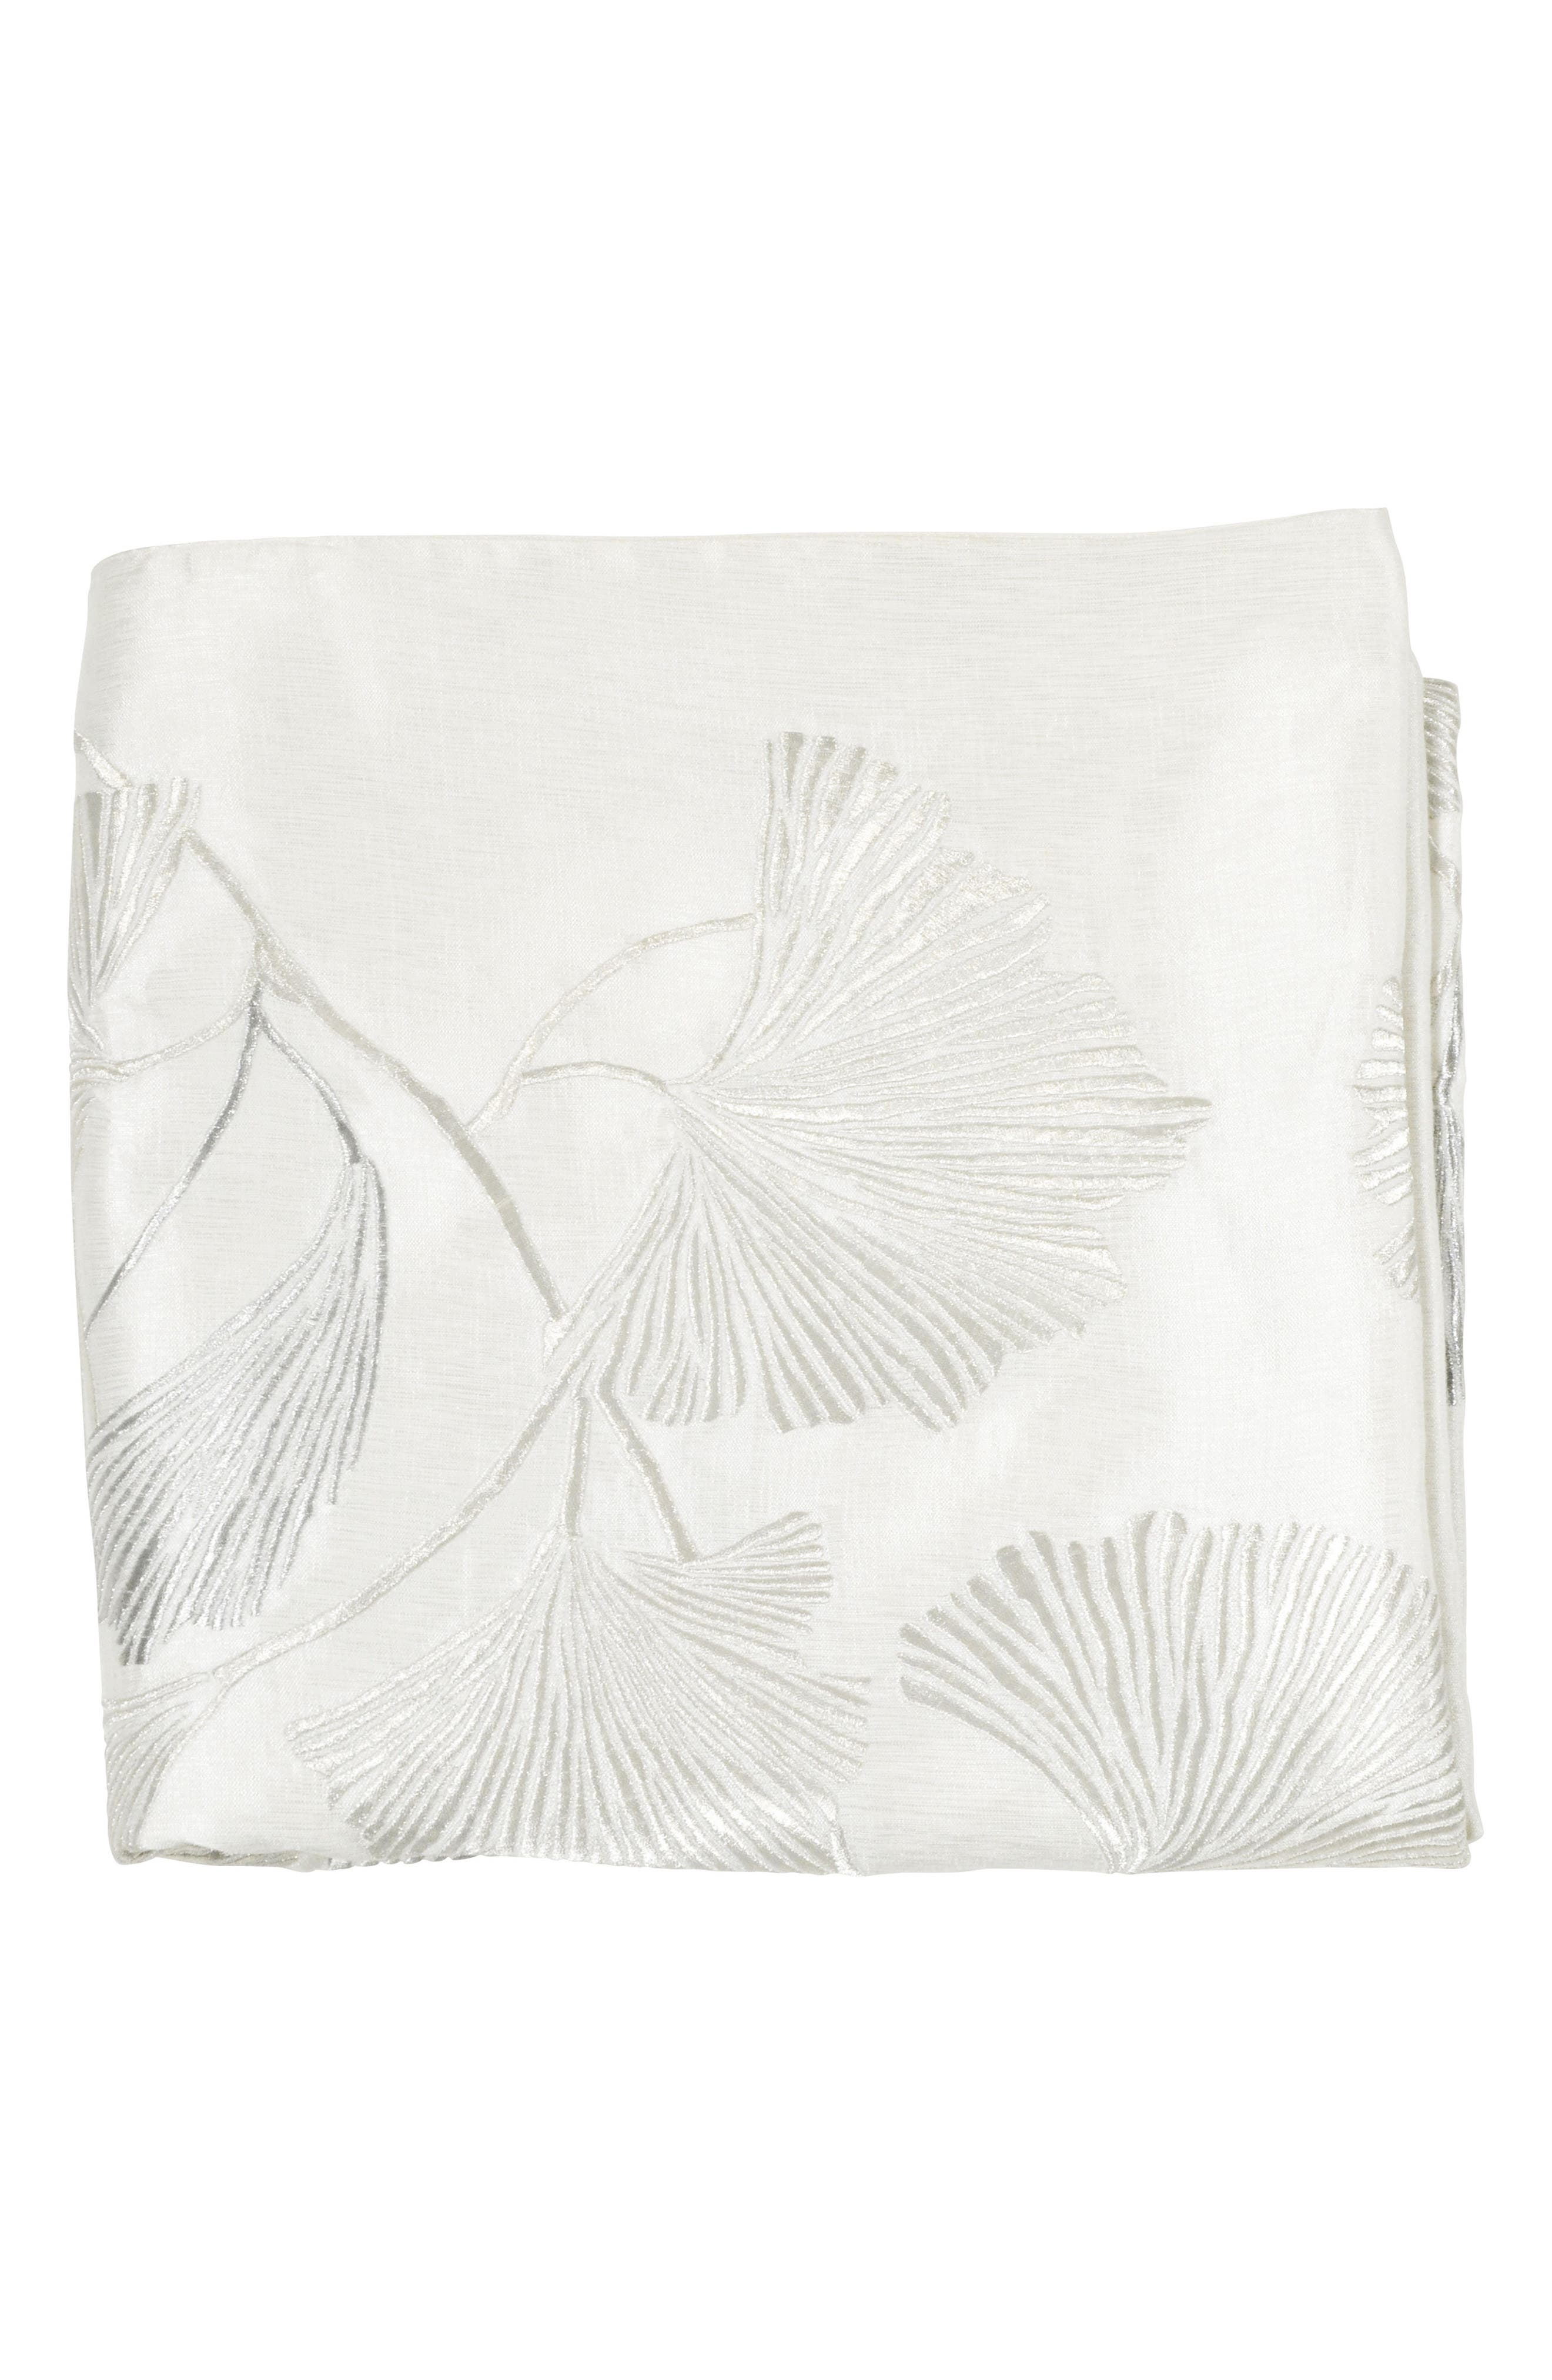 Ginkgo Leaf Embroidered Throw,                             Main thumbnail 1, color,                             Ivory